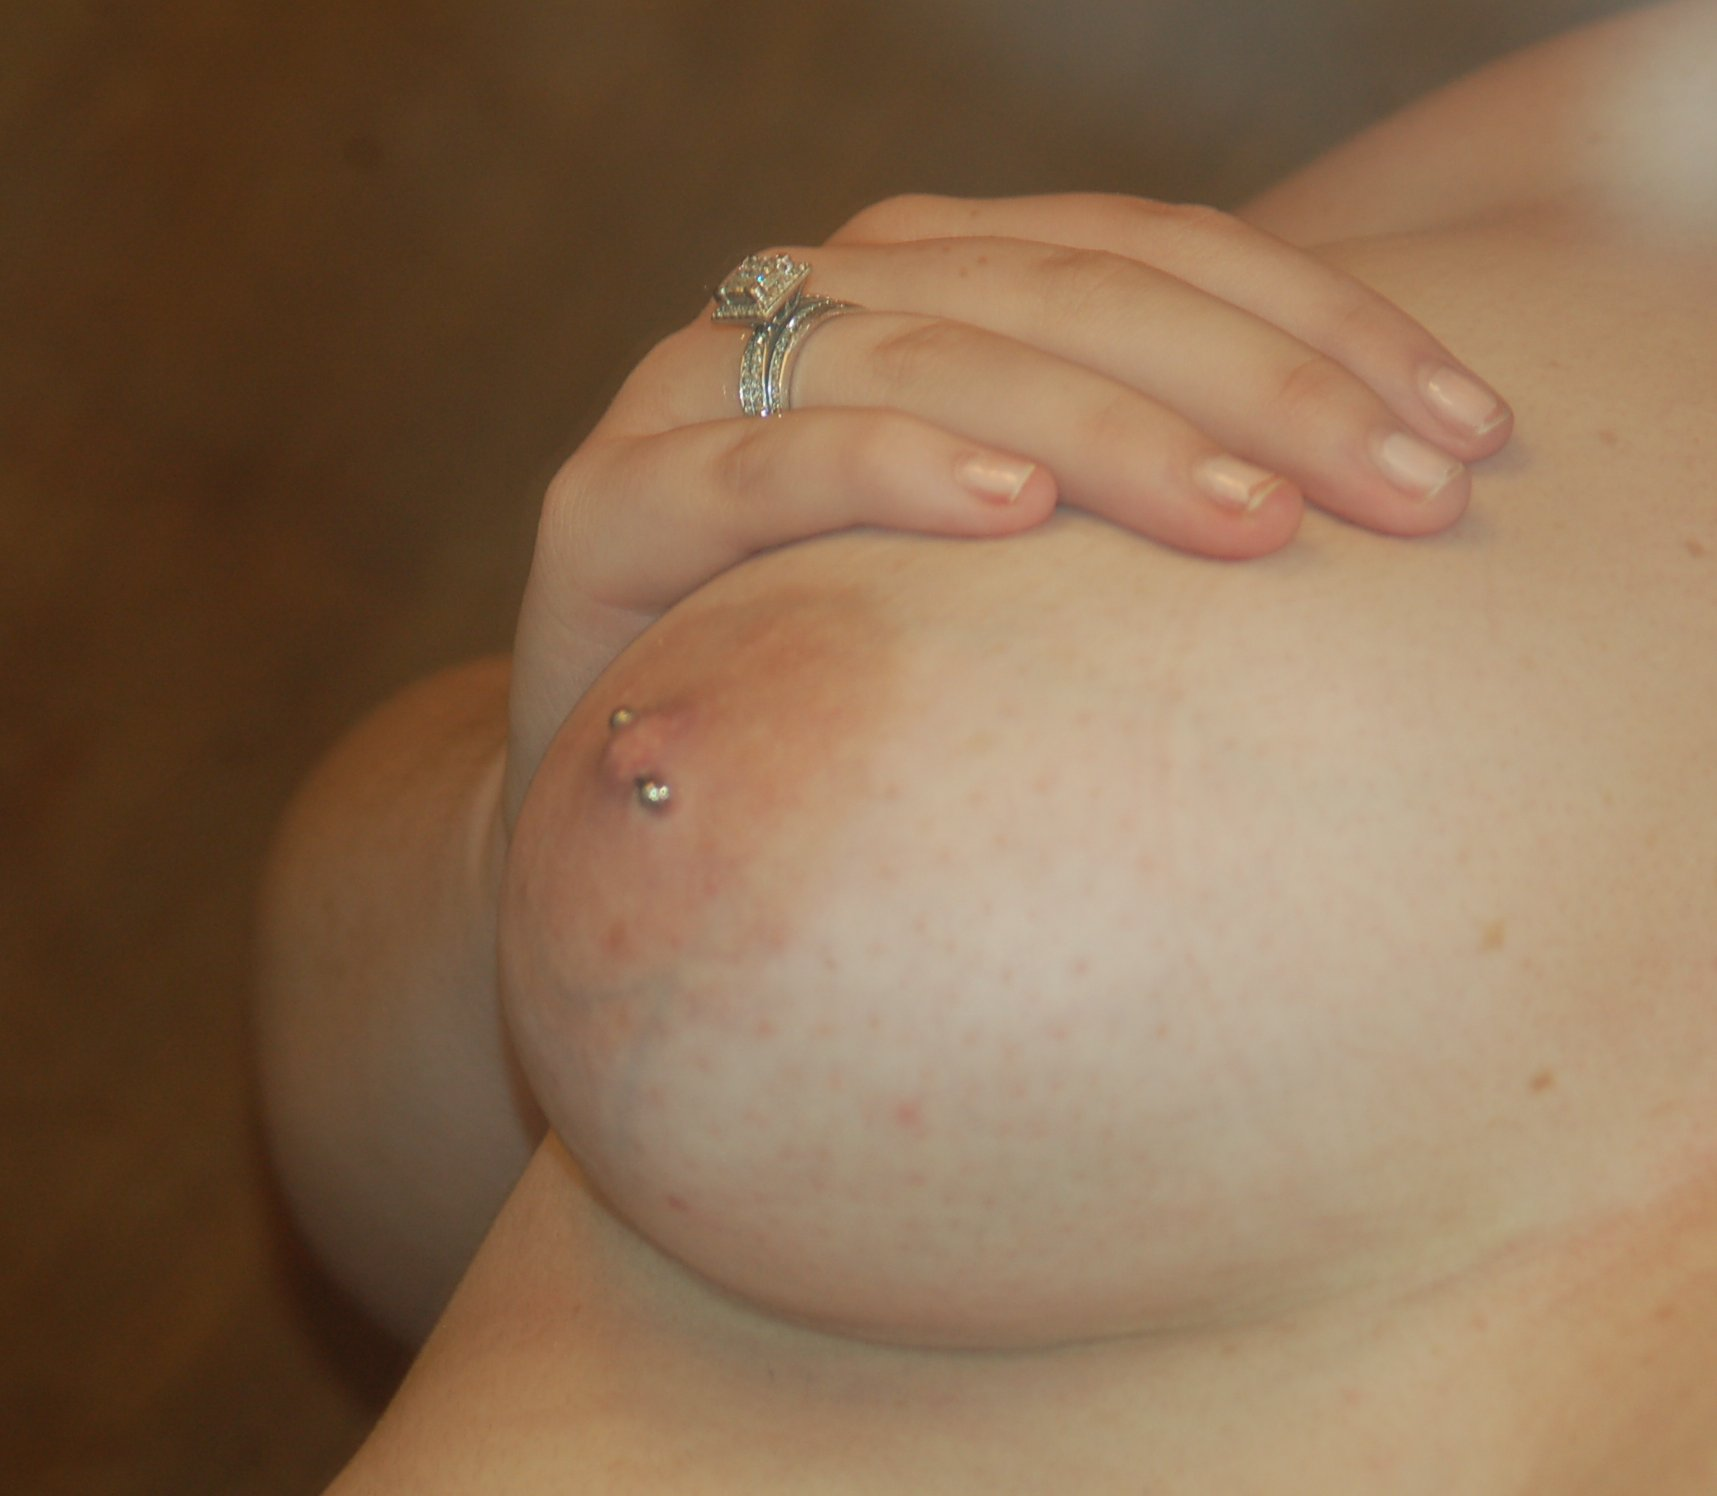 girl nipple piercing